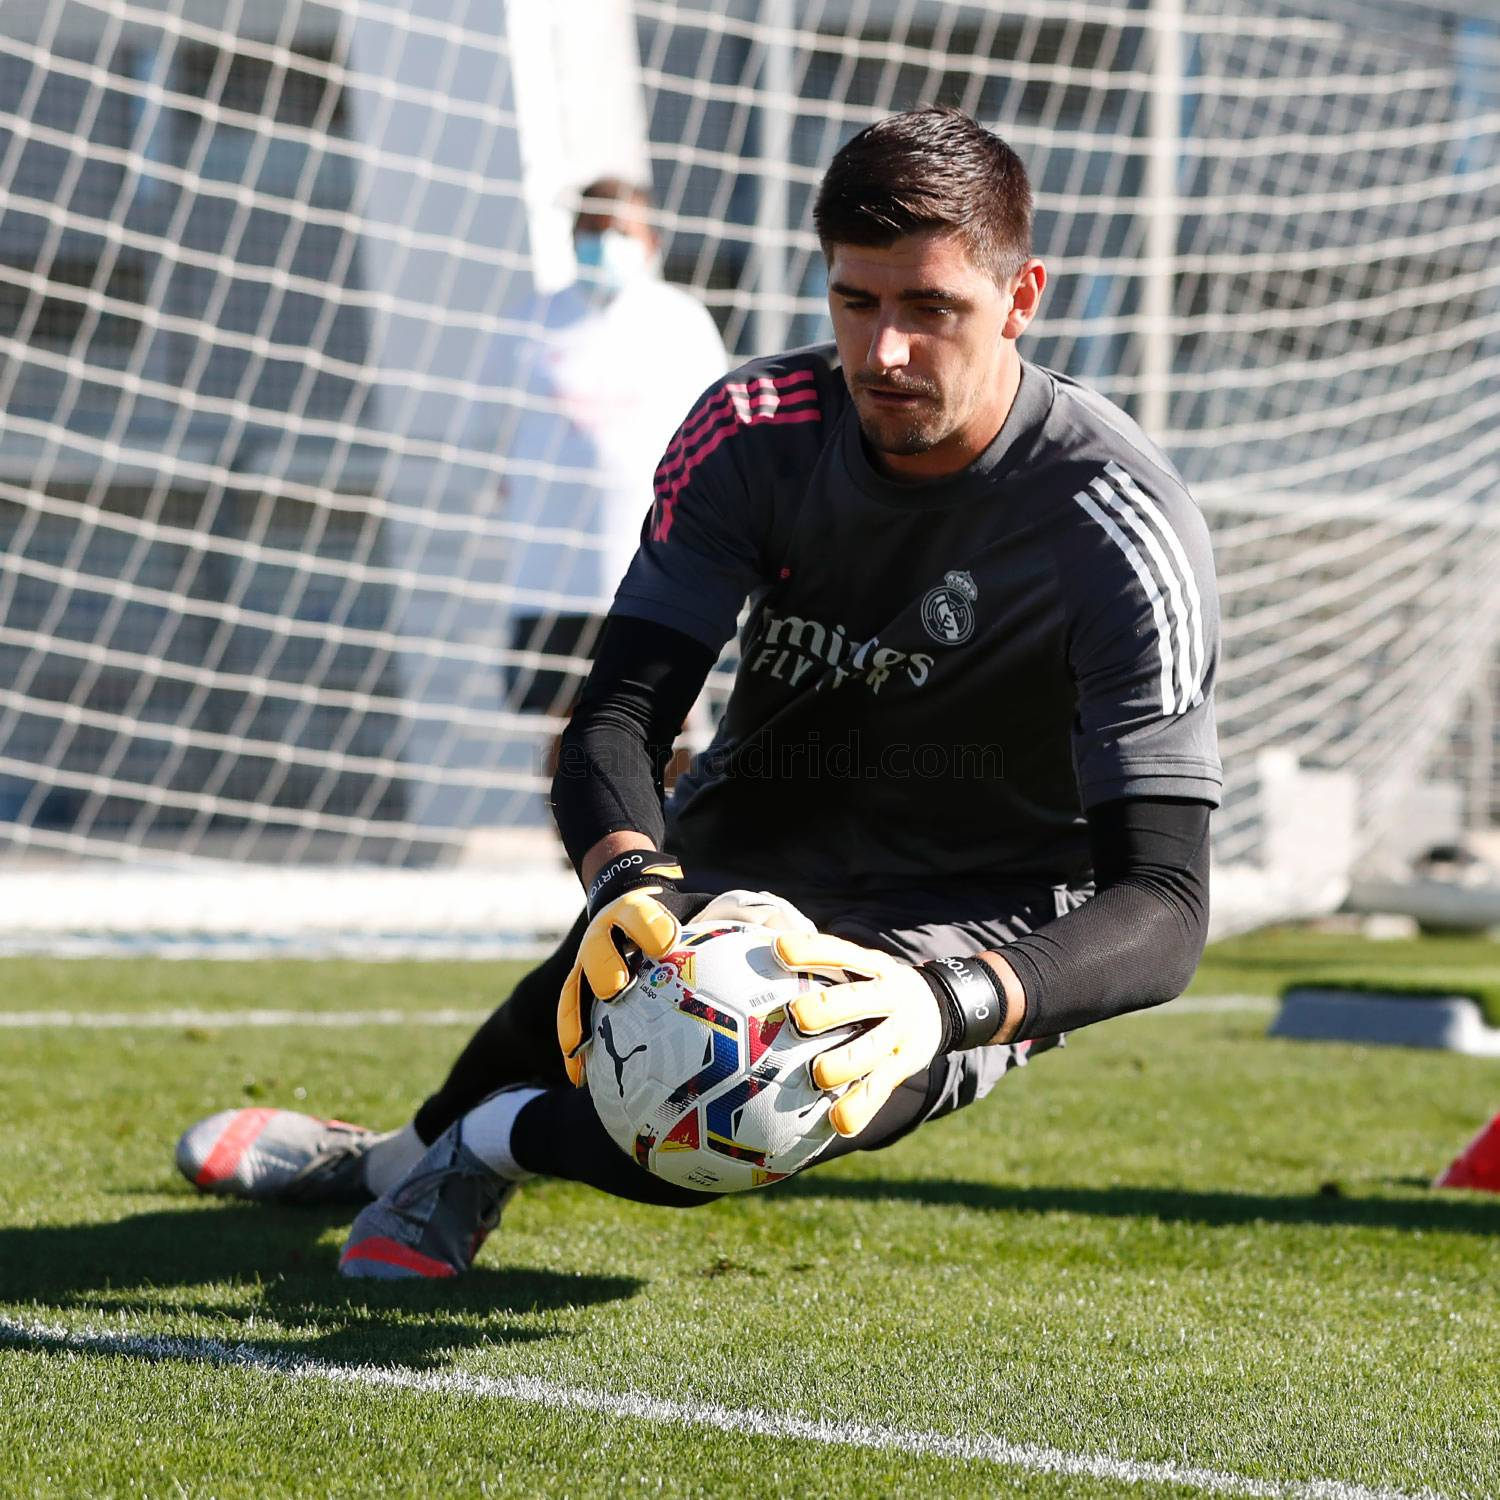 Real Madrid - Entrenamiento del Real Madrid  - 16-10-2020